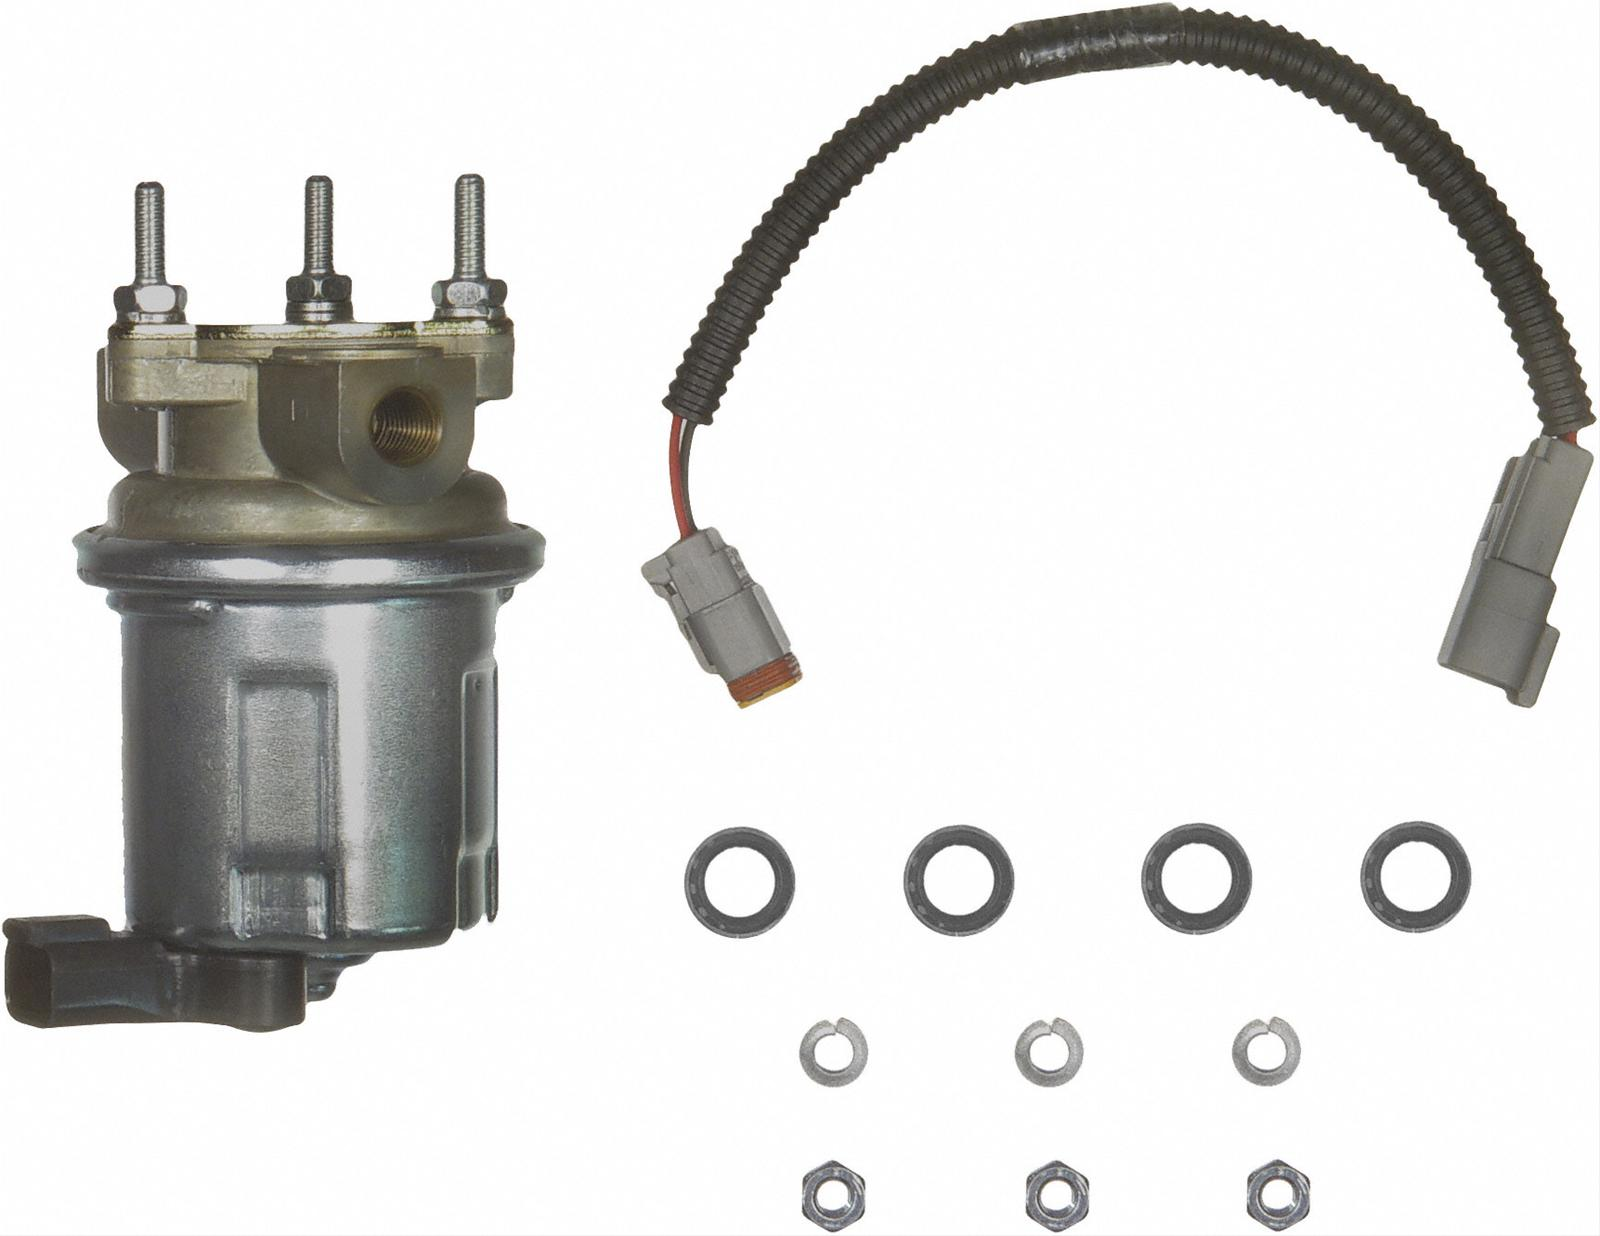 hight resolution of carter universal rotary vane electric fuel pumps p74213 free shipping on orders over 99 at summit racing